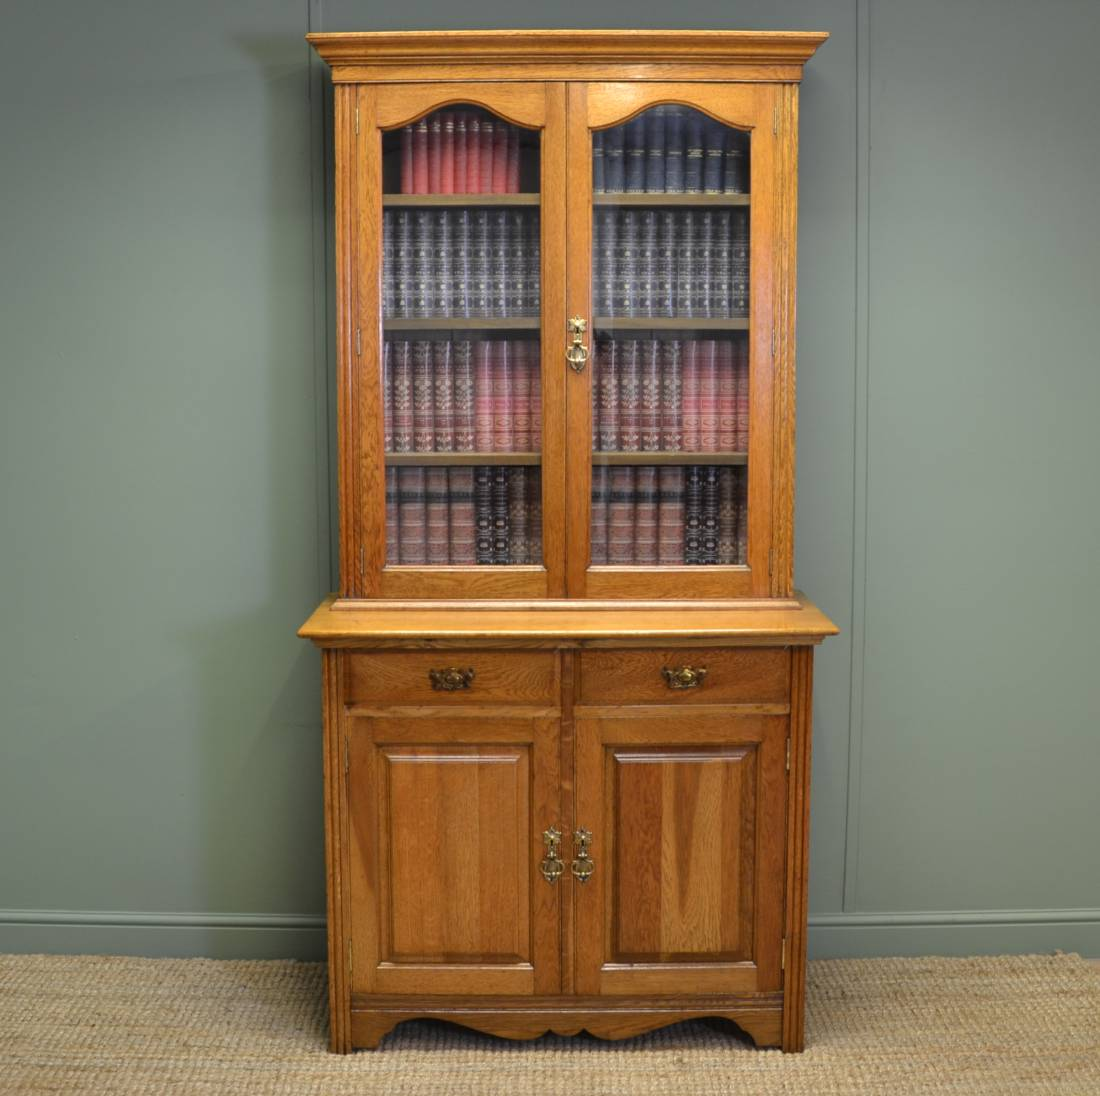 Stunning Quality Victorian Golden Oak Antique Bookcase.